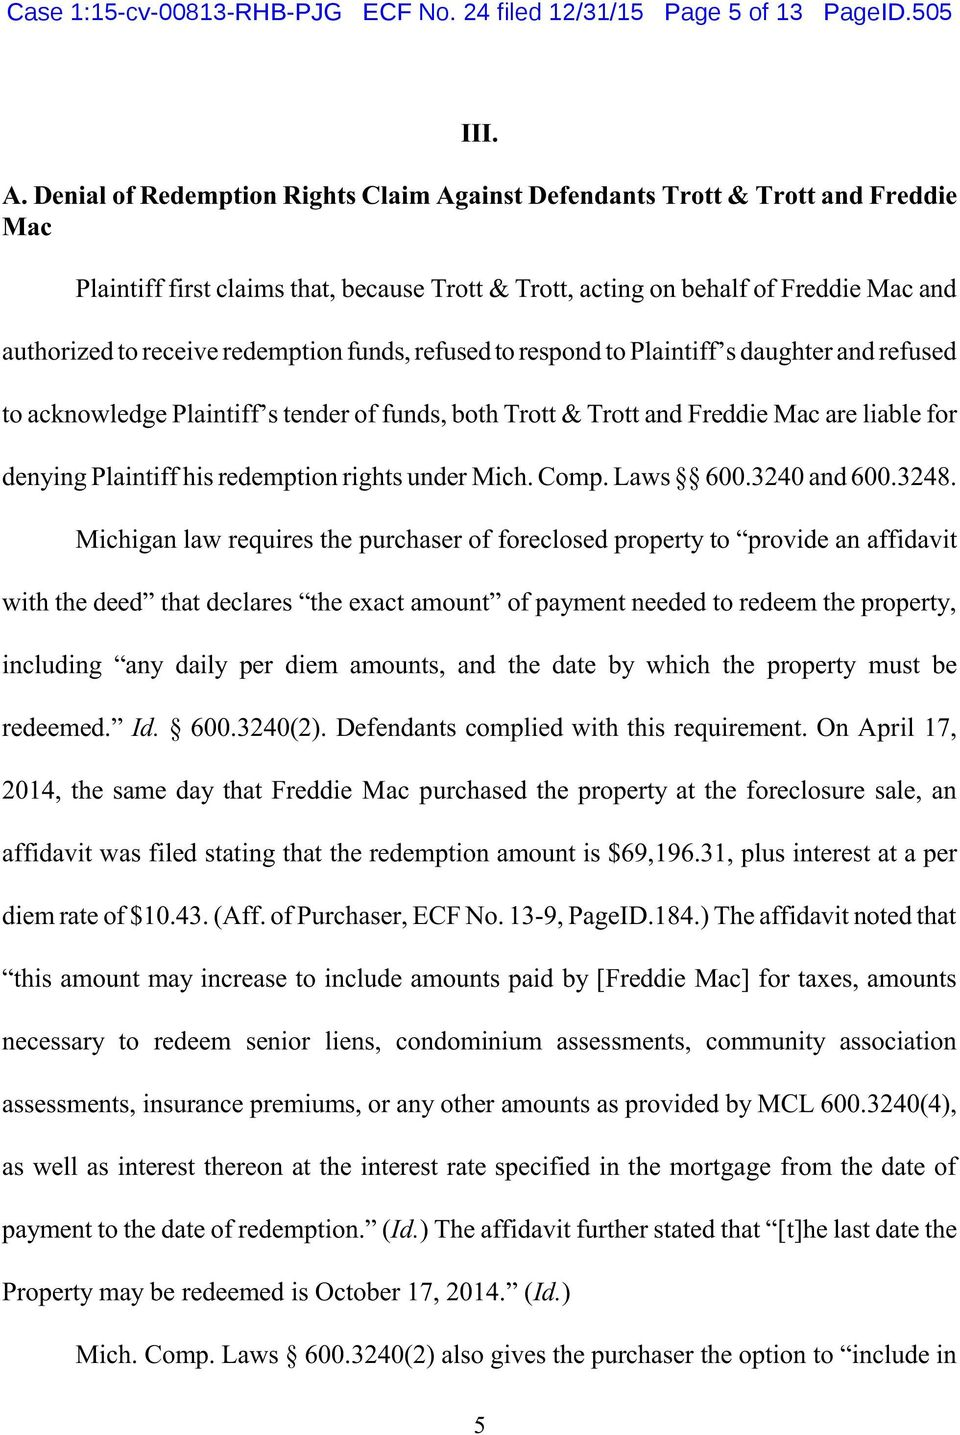 redemption funds, refused to respond to Plaintiff s daughter and refused to acknowledge Plaintiff s tender of funds, both Trott & Trott and Freddie Mac are liable for denying Plaintiff his redemption